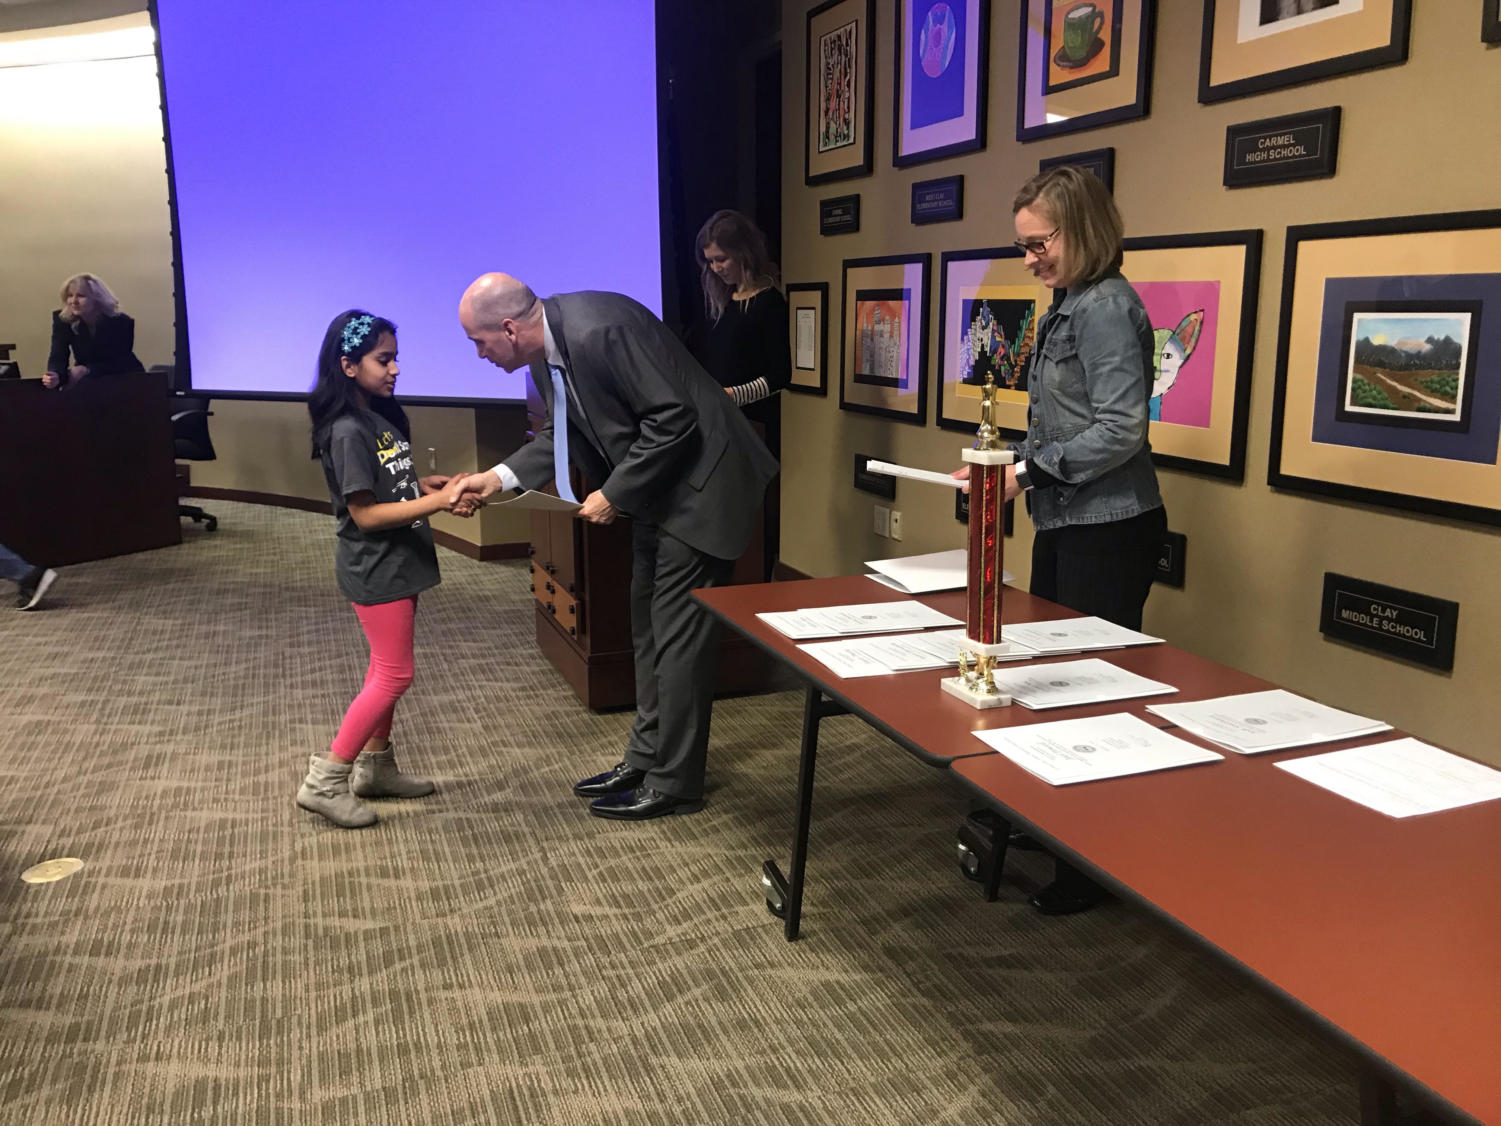 Superintendent Michael Beresford hands an award to a Science Bowl elementary school member during a school board meeting on Feb. 12. The award was intended to recognize the Collegewood Elementary School Science Bowl team for winning the Indiana state championship.